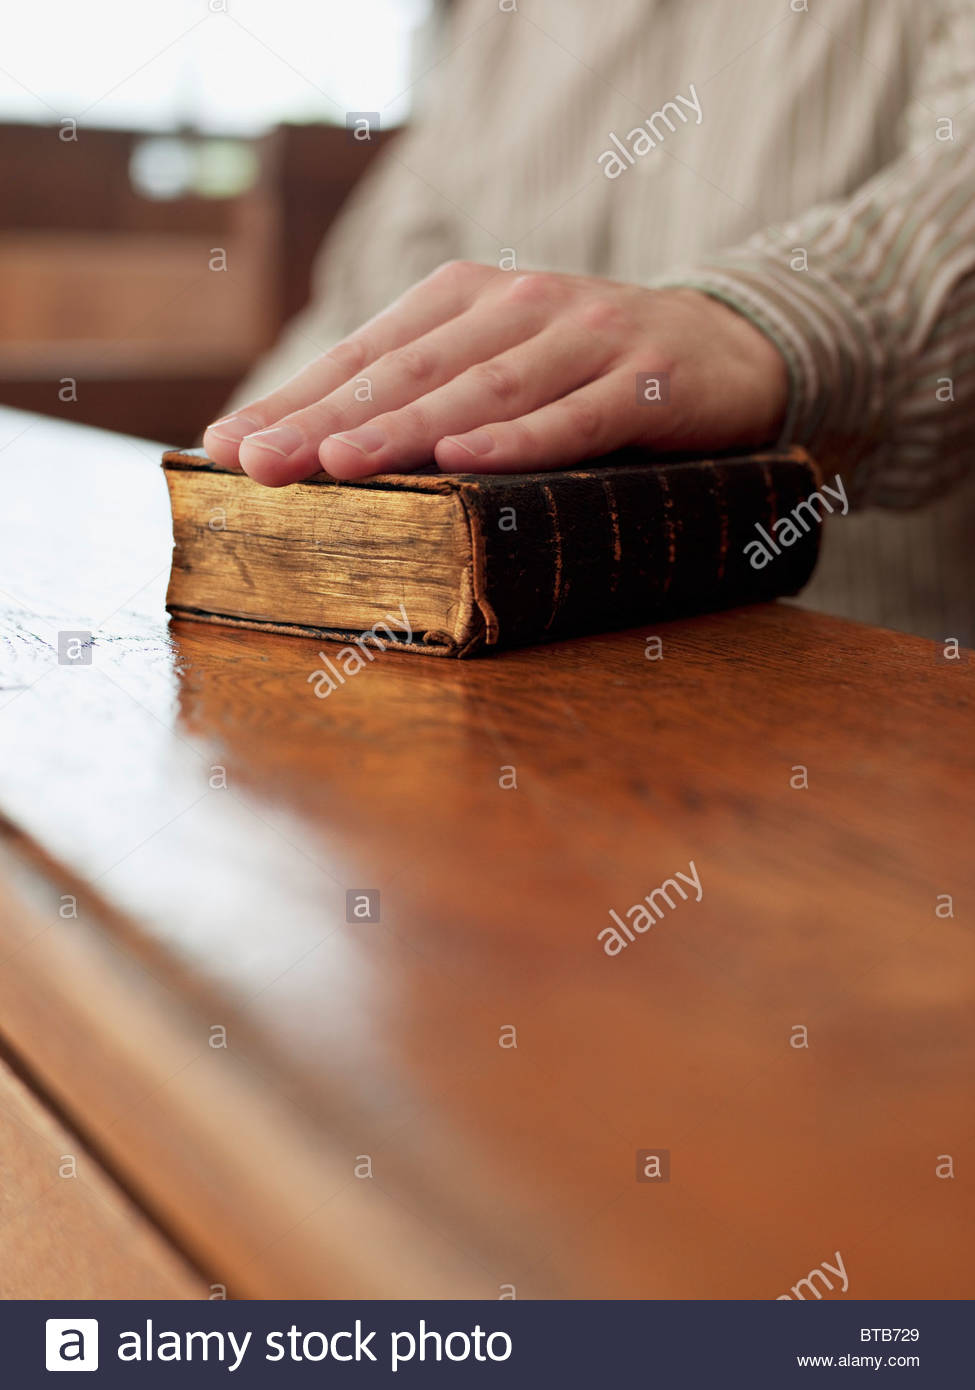 Hand of witness on Bible in courtroom - Stock Image